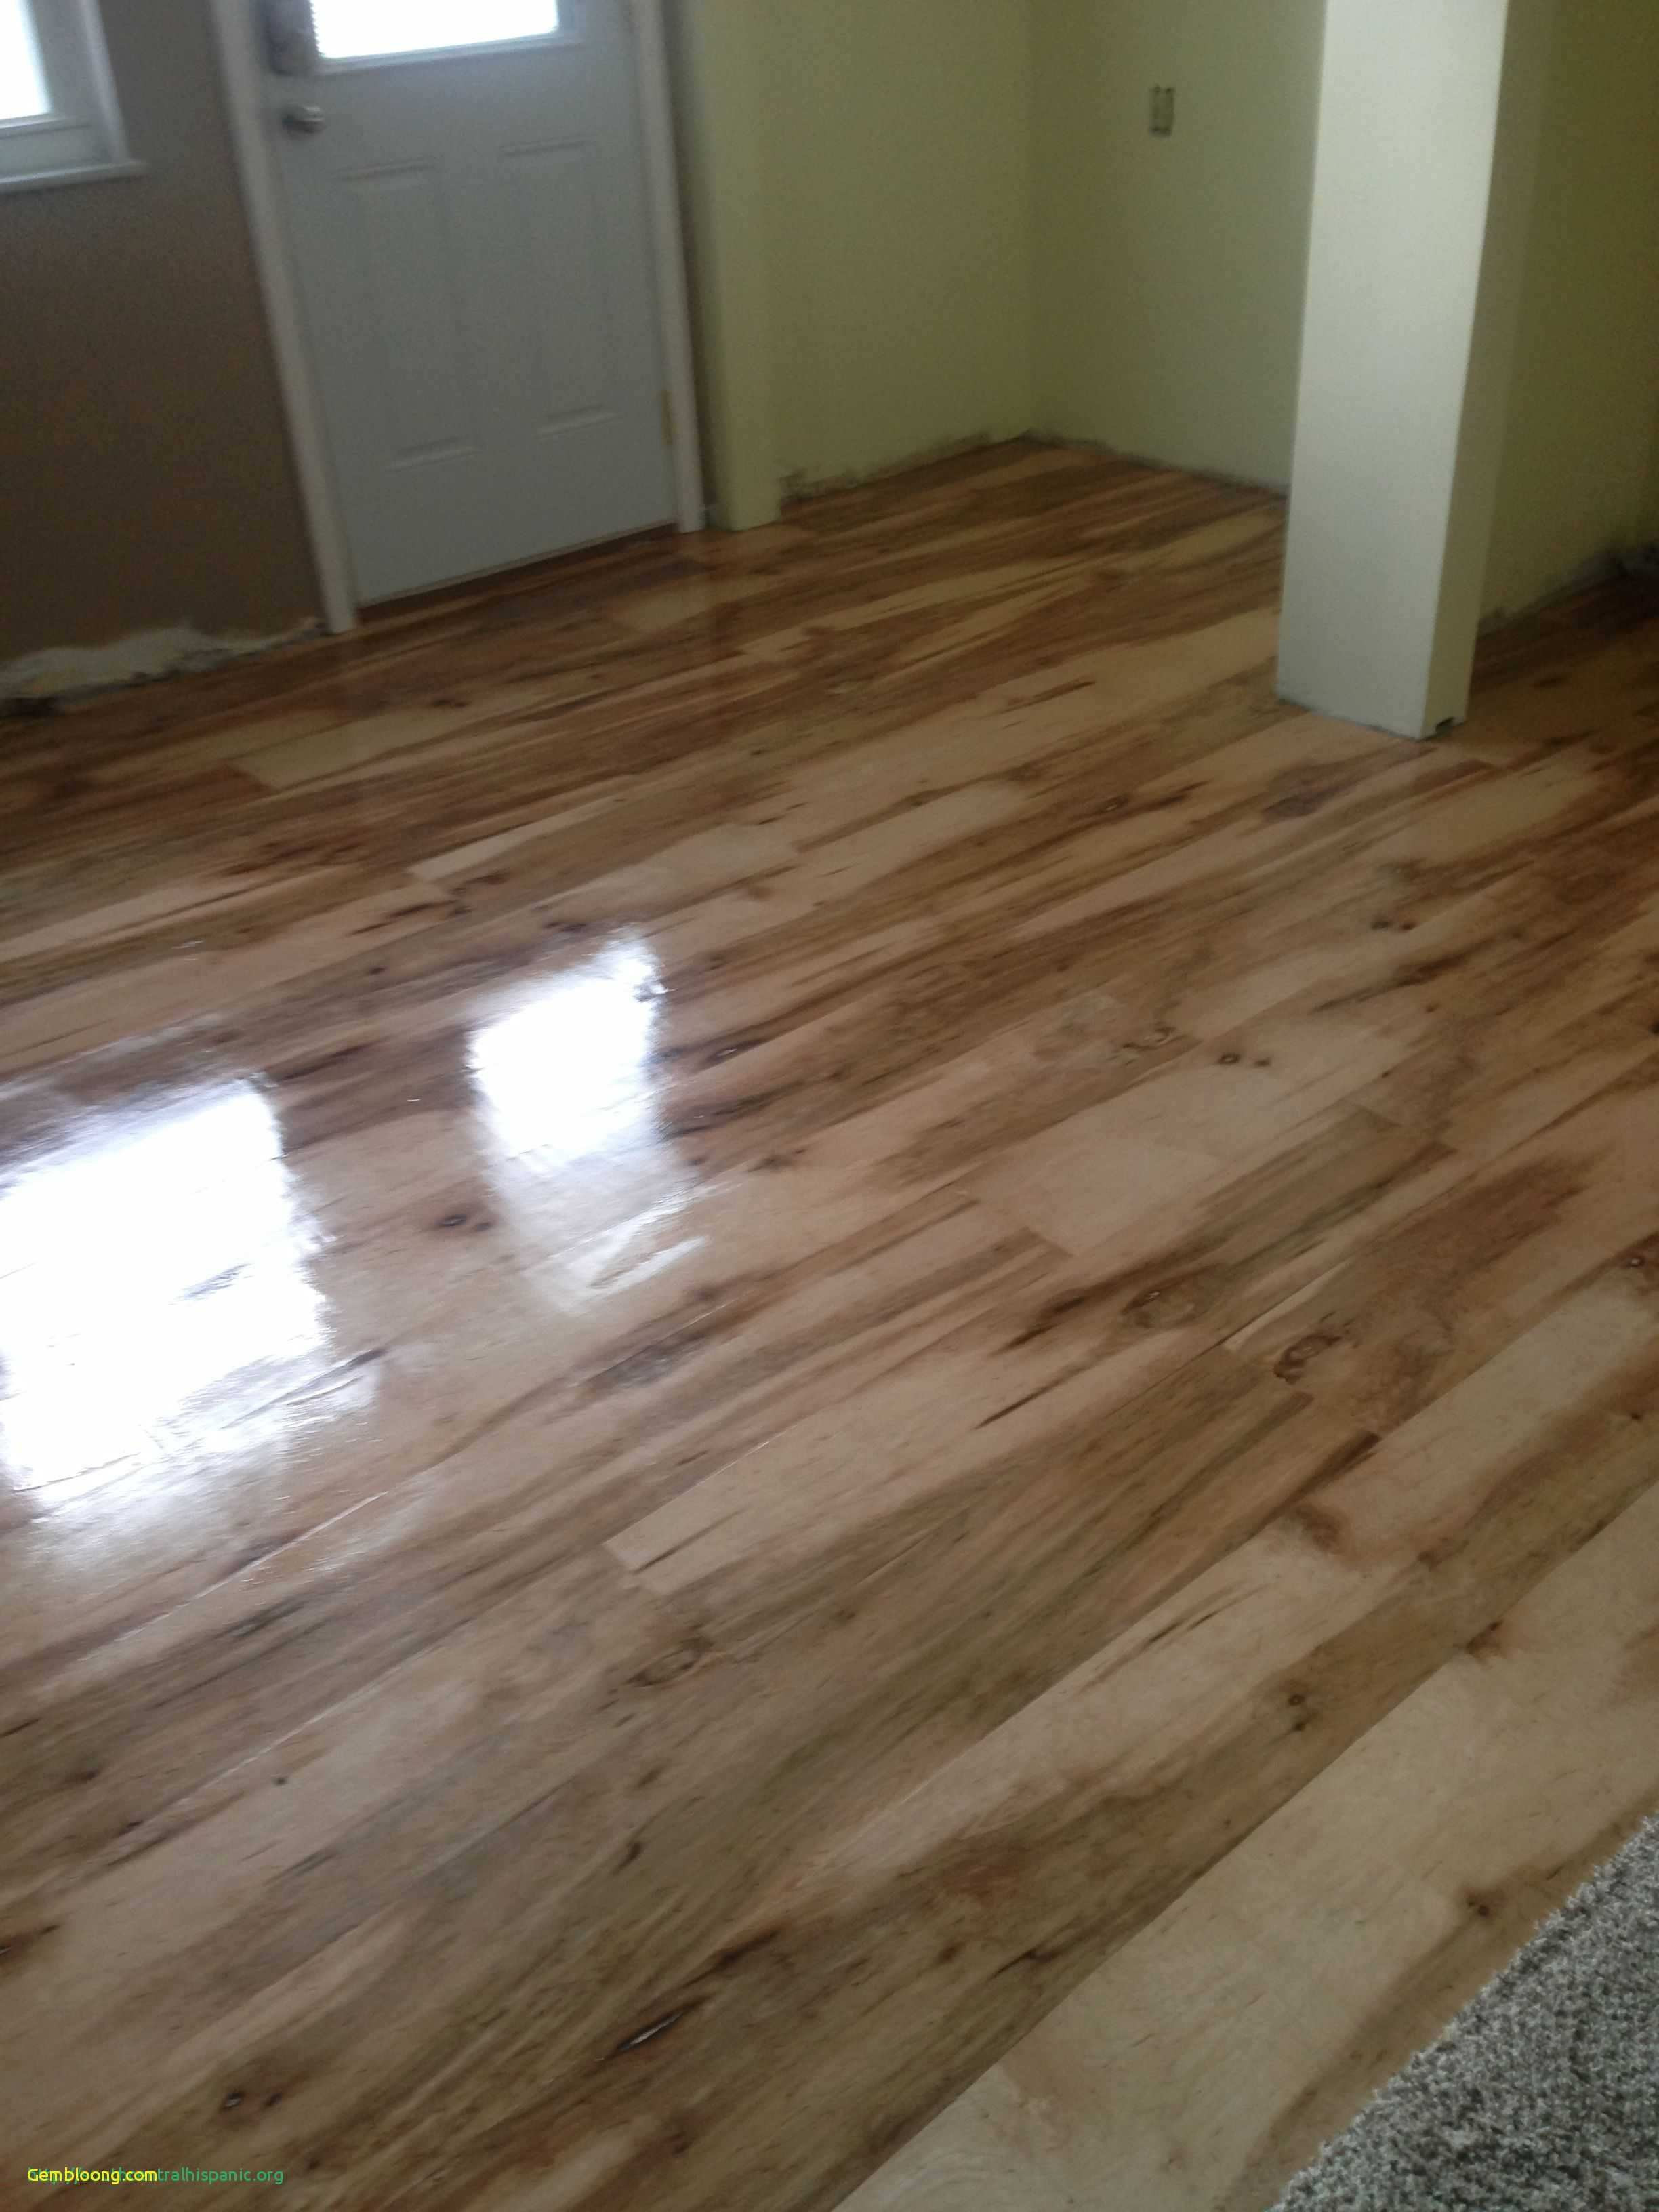 prefinished hardwood flooring clearance of solid wooden flooring facesinnature for solid wooden flooring vintage flooring unique engaging discount hardwood flooring